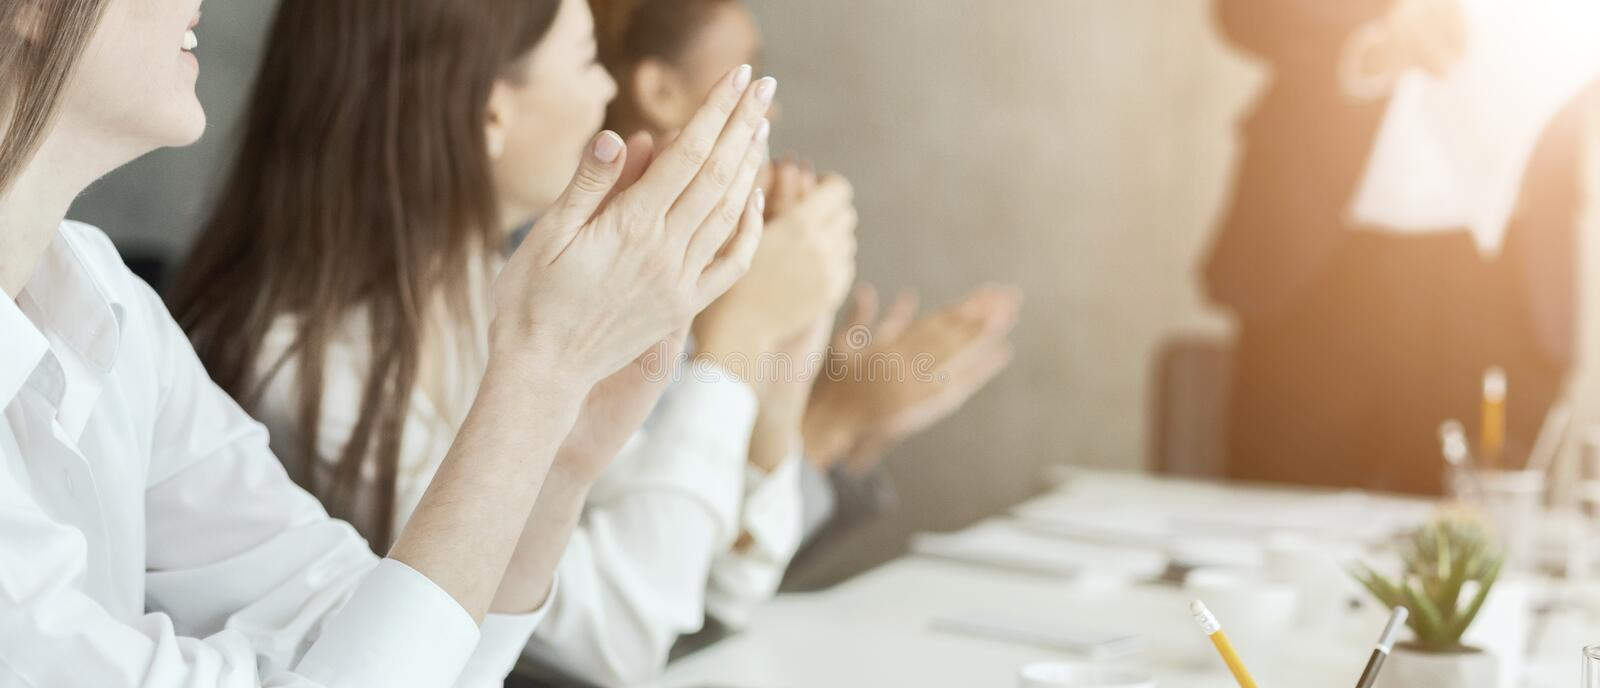 Business colleagues clapping hands at meeting, greeting speaker stock photography